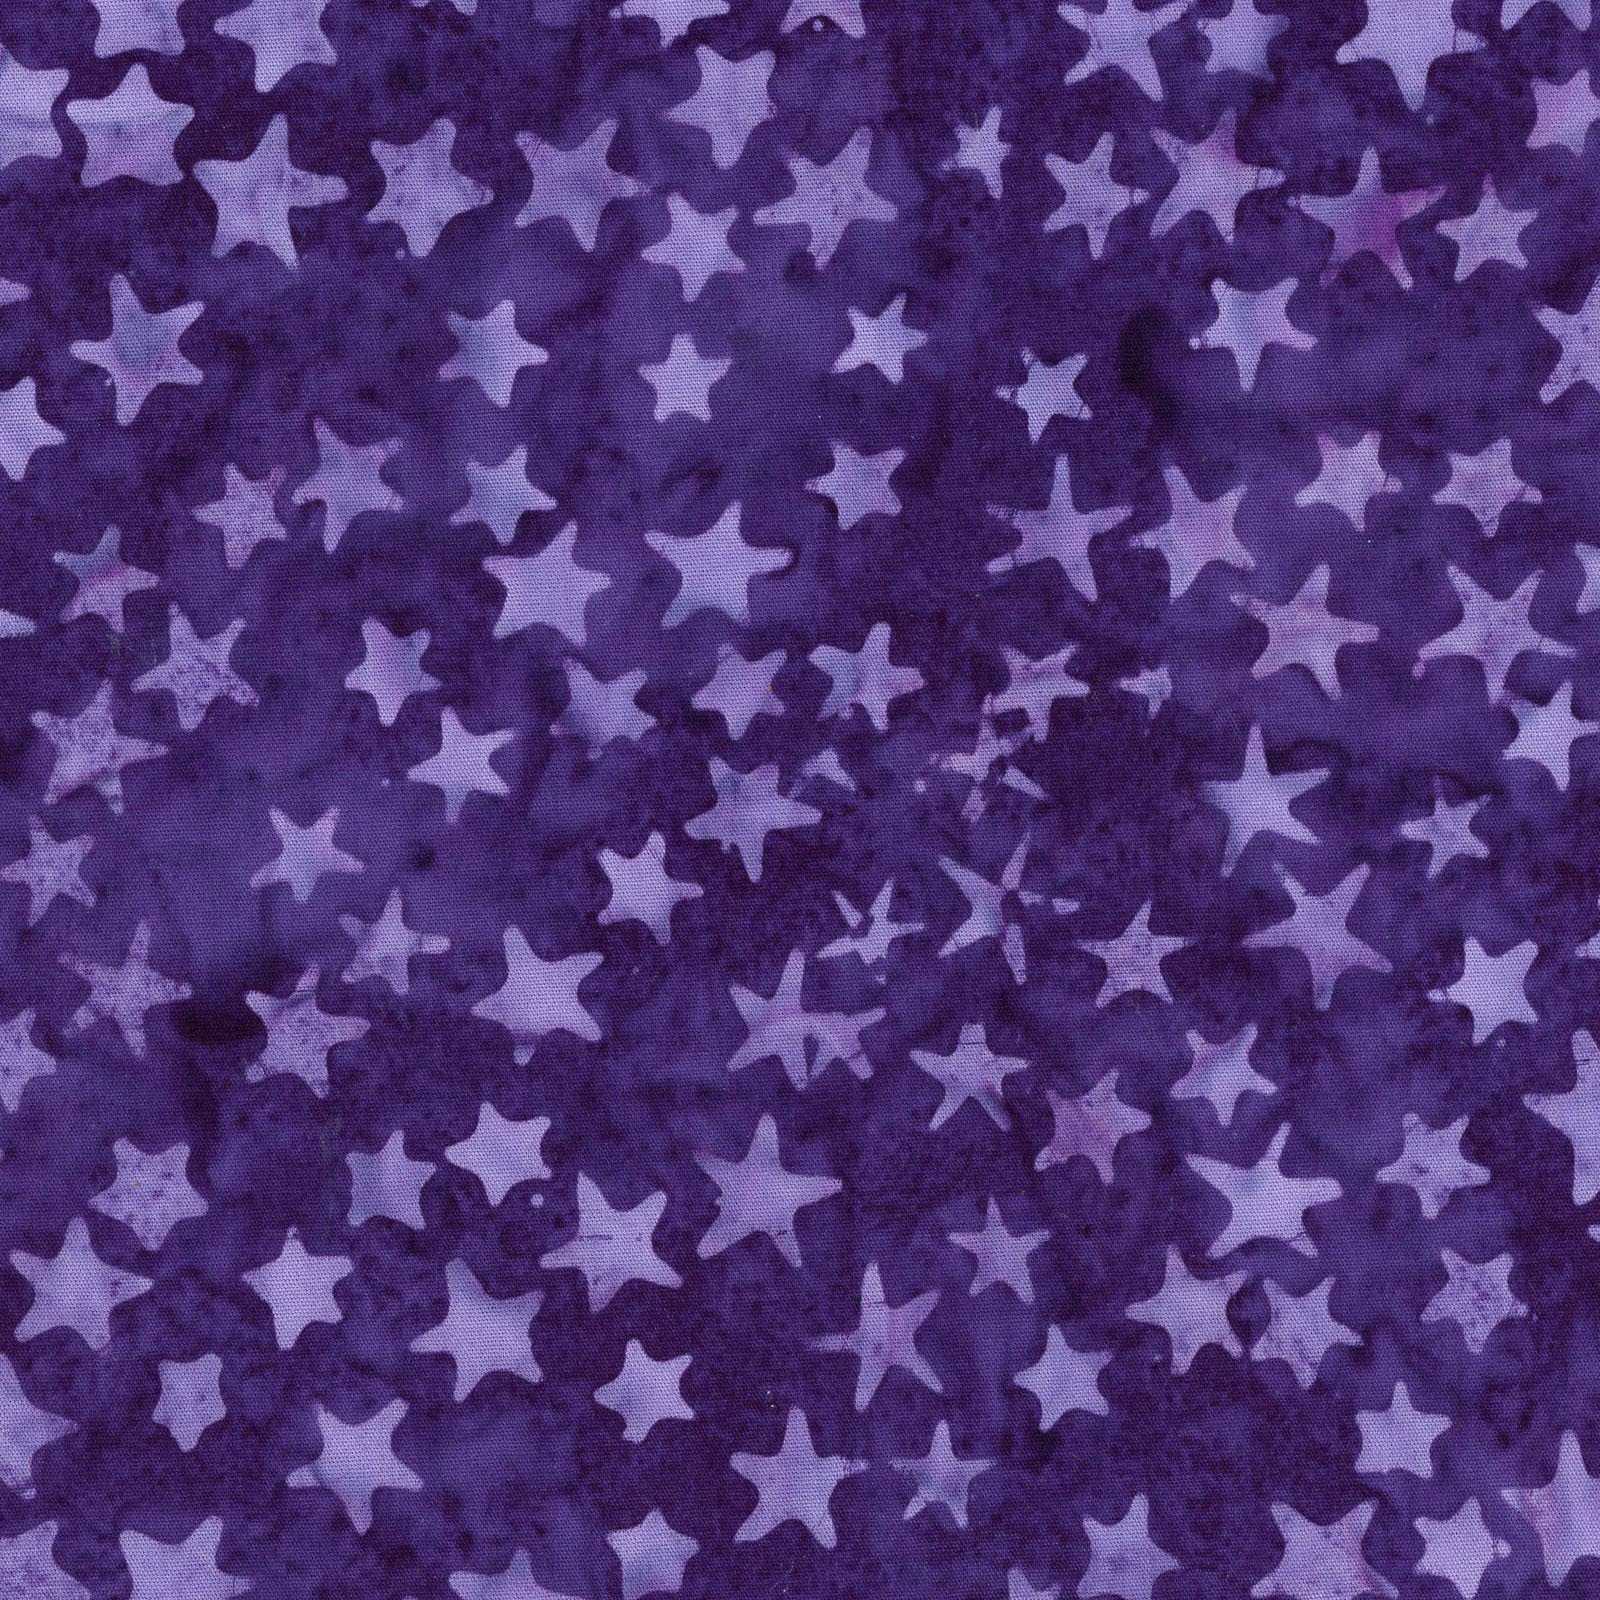 Stars - Grape Juice<br/>Maywood Studio B20-027